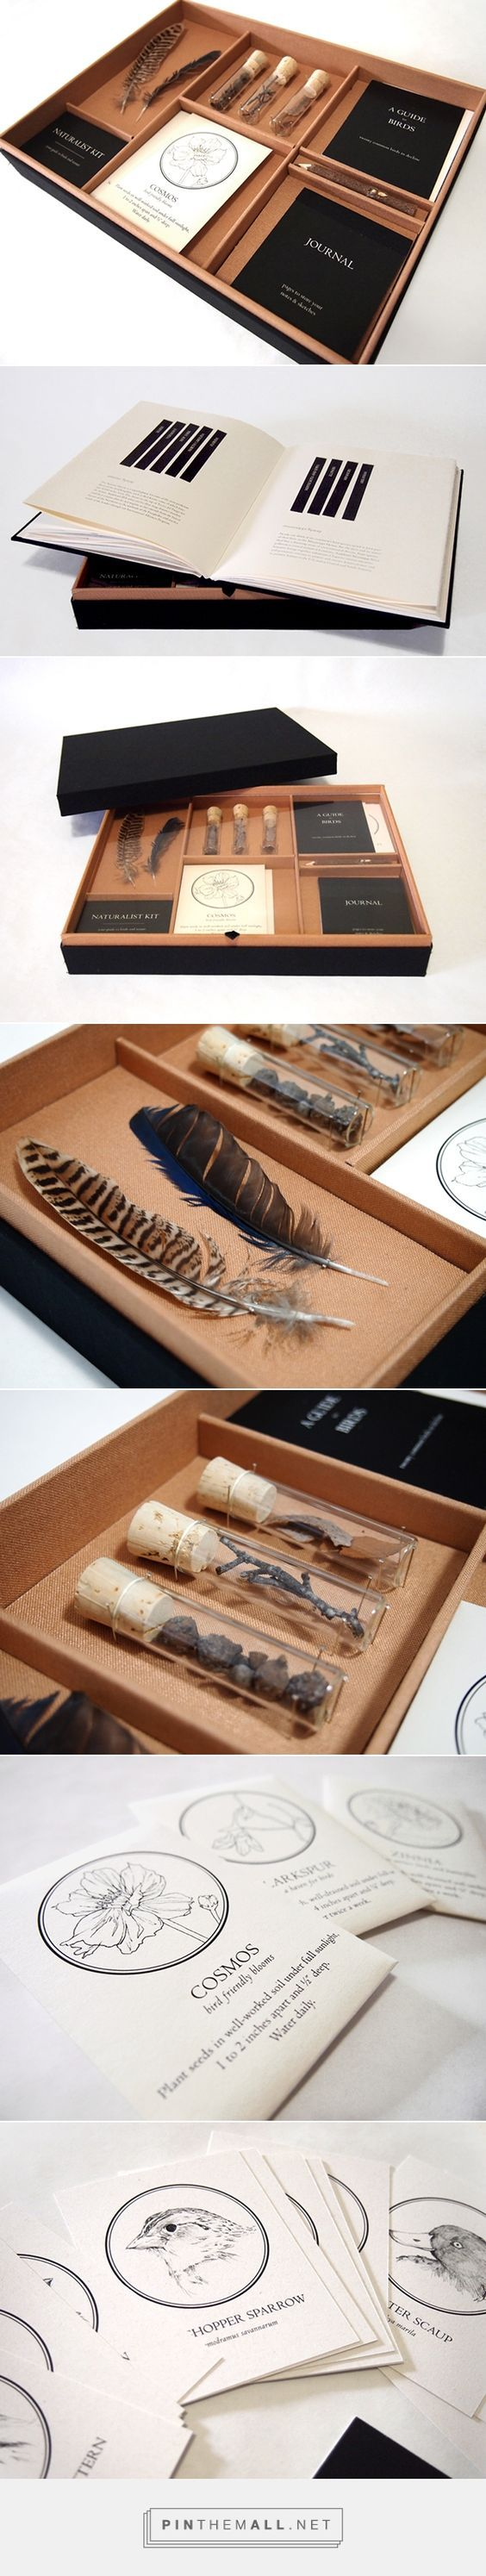 Audubon Promo Kit packaging on Behance by Kimberly Low curated by Packaging Diva PD, This Prototype was created from a variety of existing literature about the National Audubon Society. The information, made the box, hand bound the book, and drew all illustrations.: